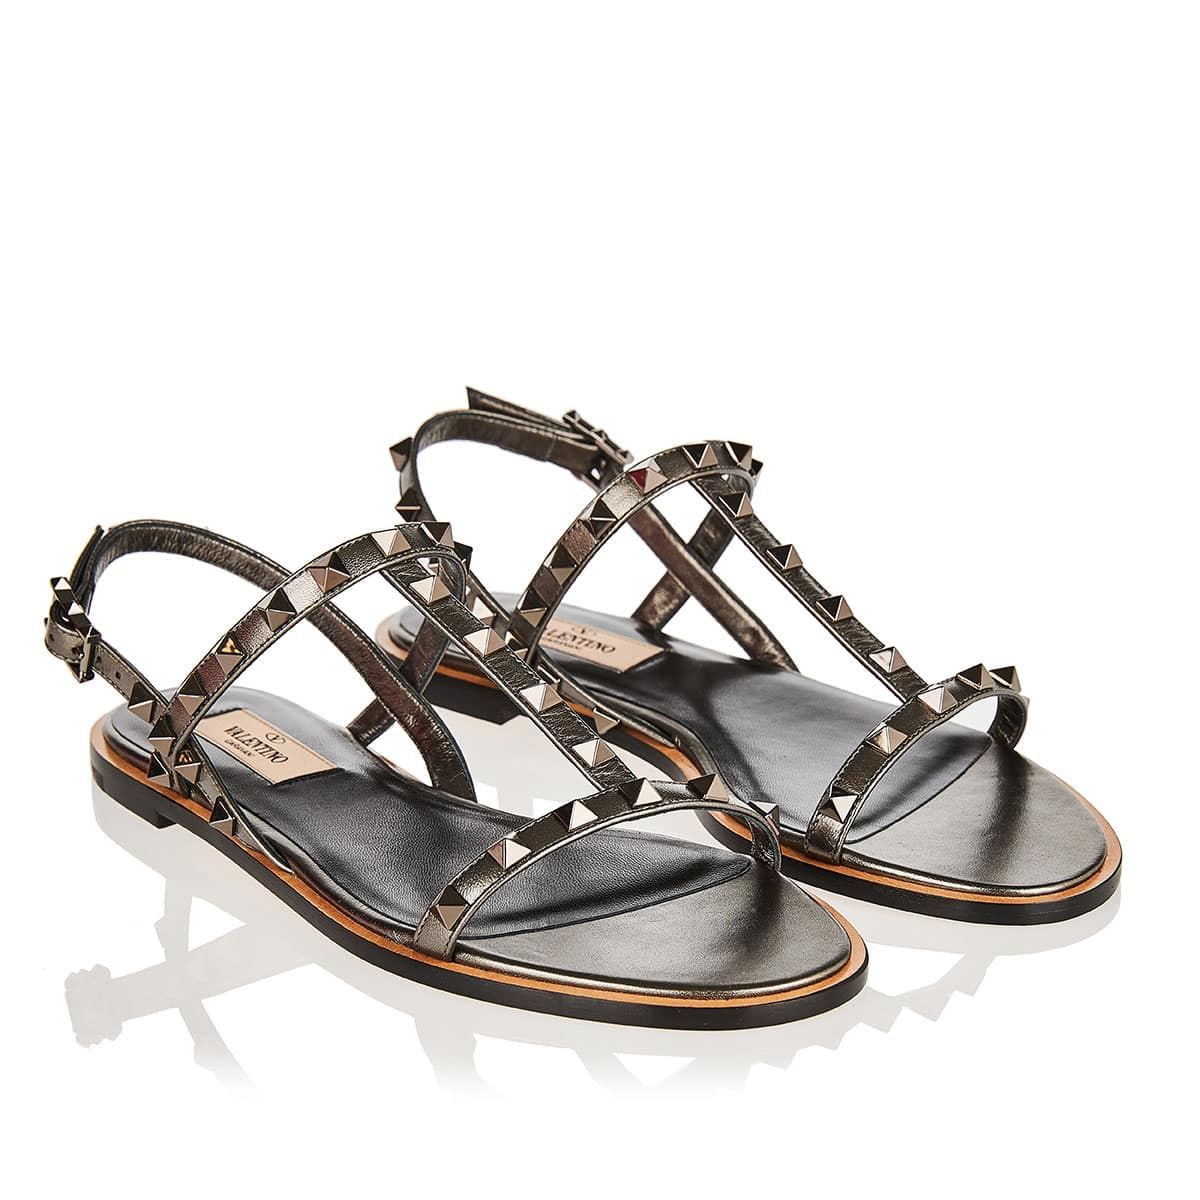 Rockstud flat metallic leather sandals